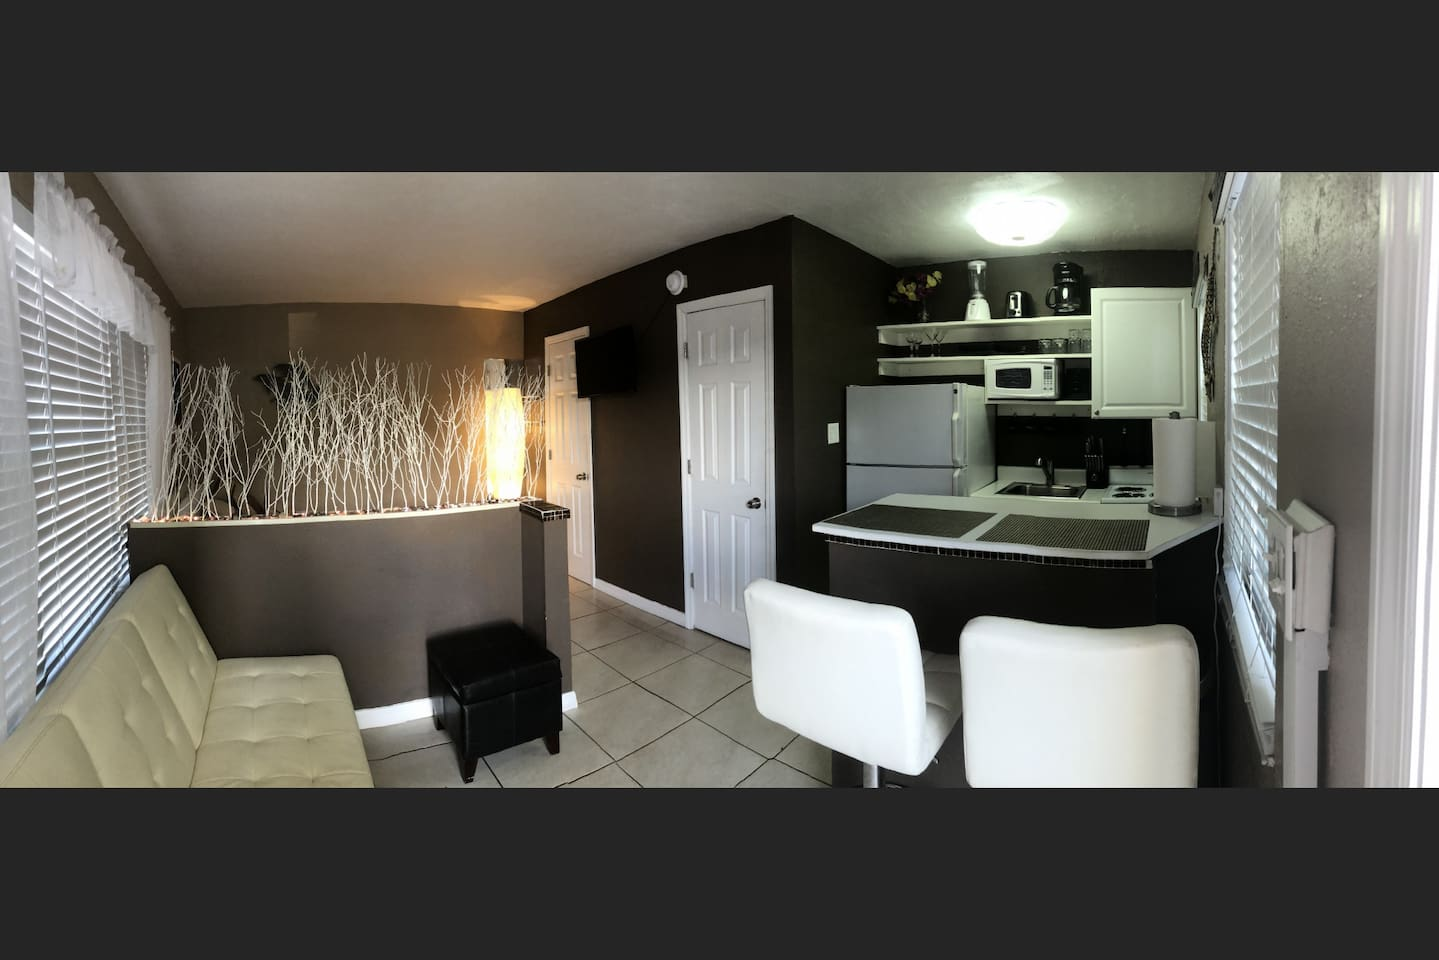 Unit 2 features an open design with a half wall separating the living and sleeping areas.  The half wall has a pleasant LED glow which can be dimmed.  The TV is centrally located and can be adjusted for multiple viewing angles